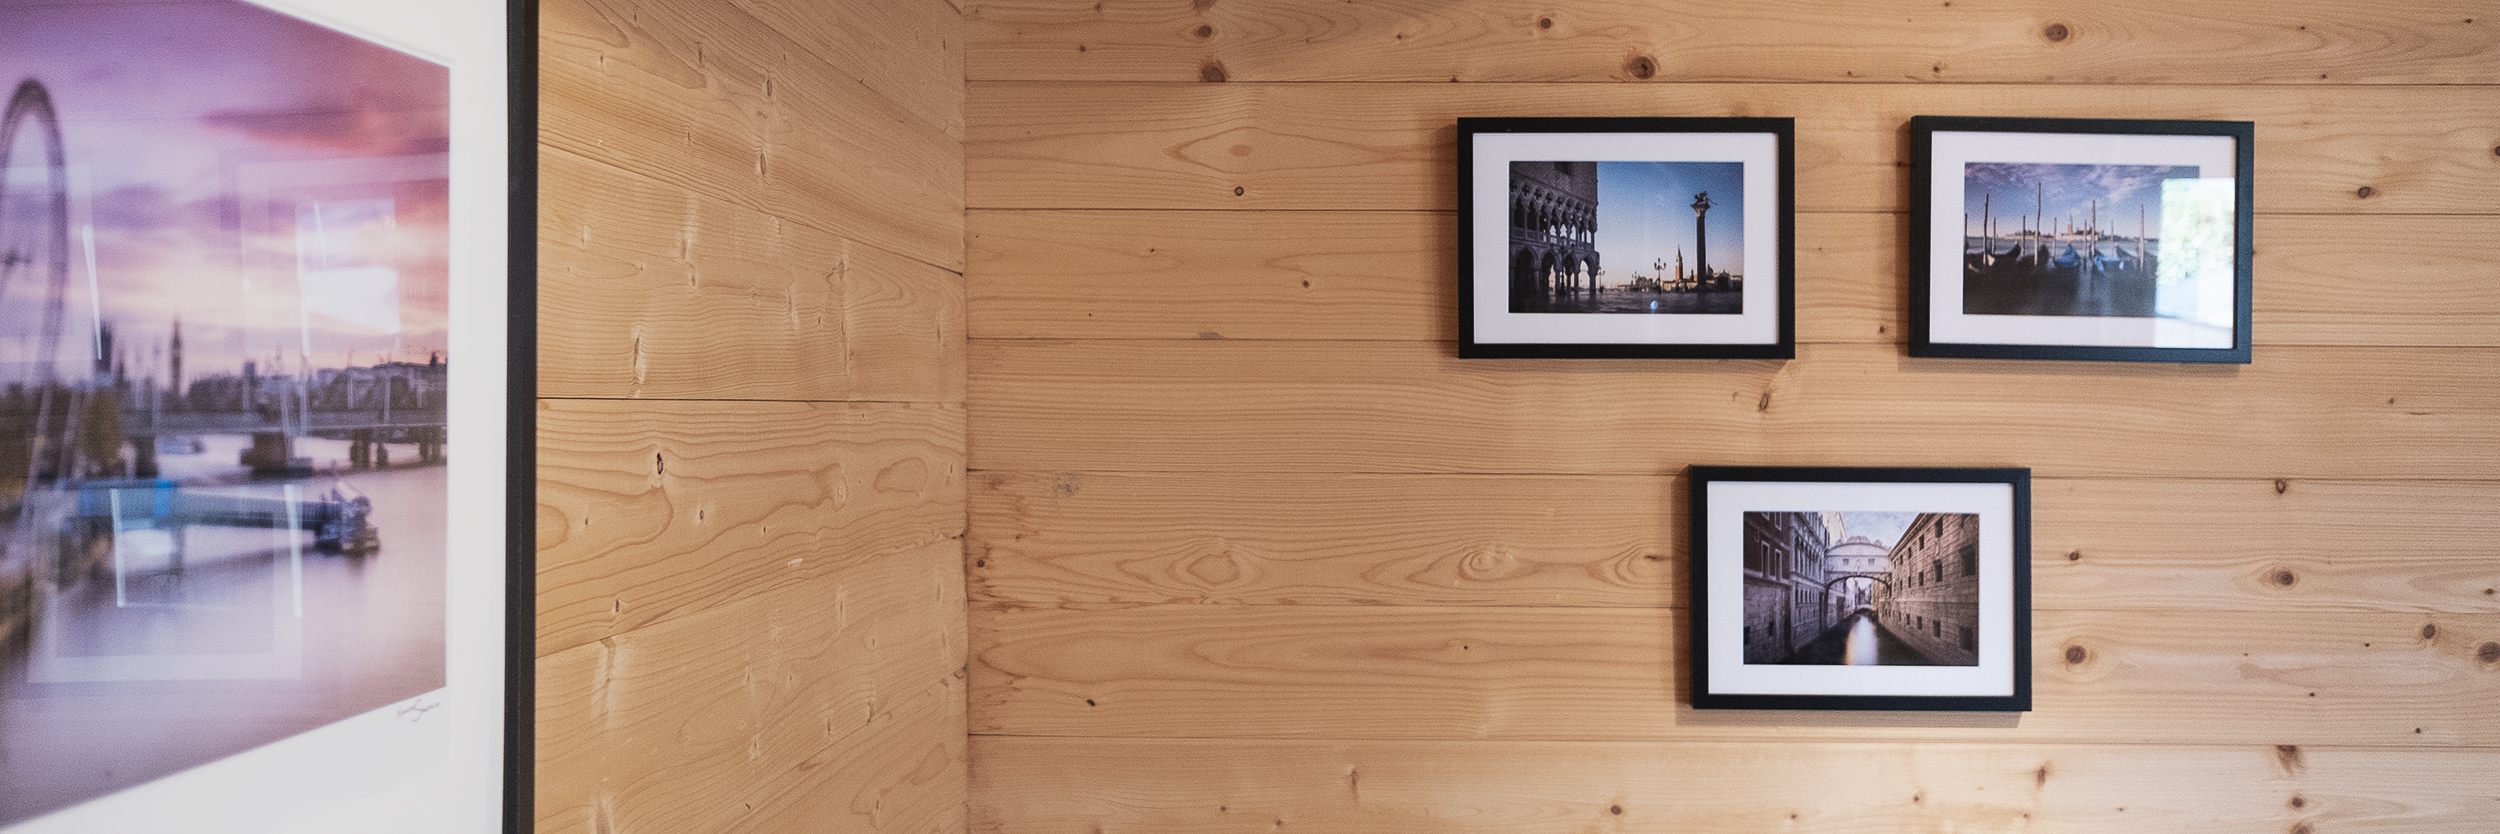 Venice prints mounted on the studio wall by Trevor Sherwin